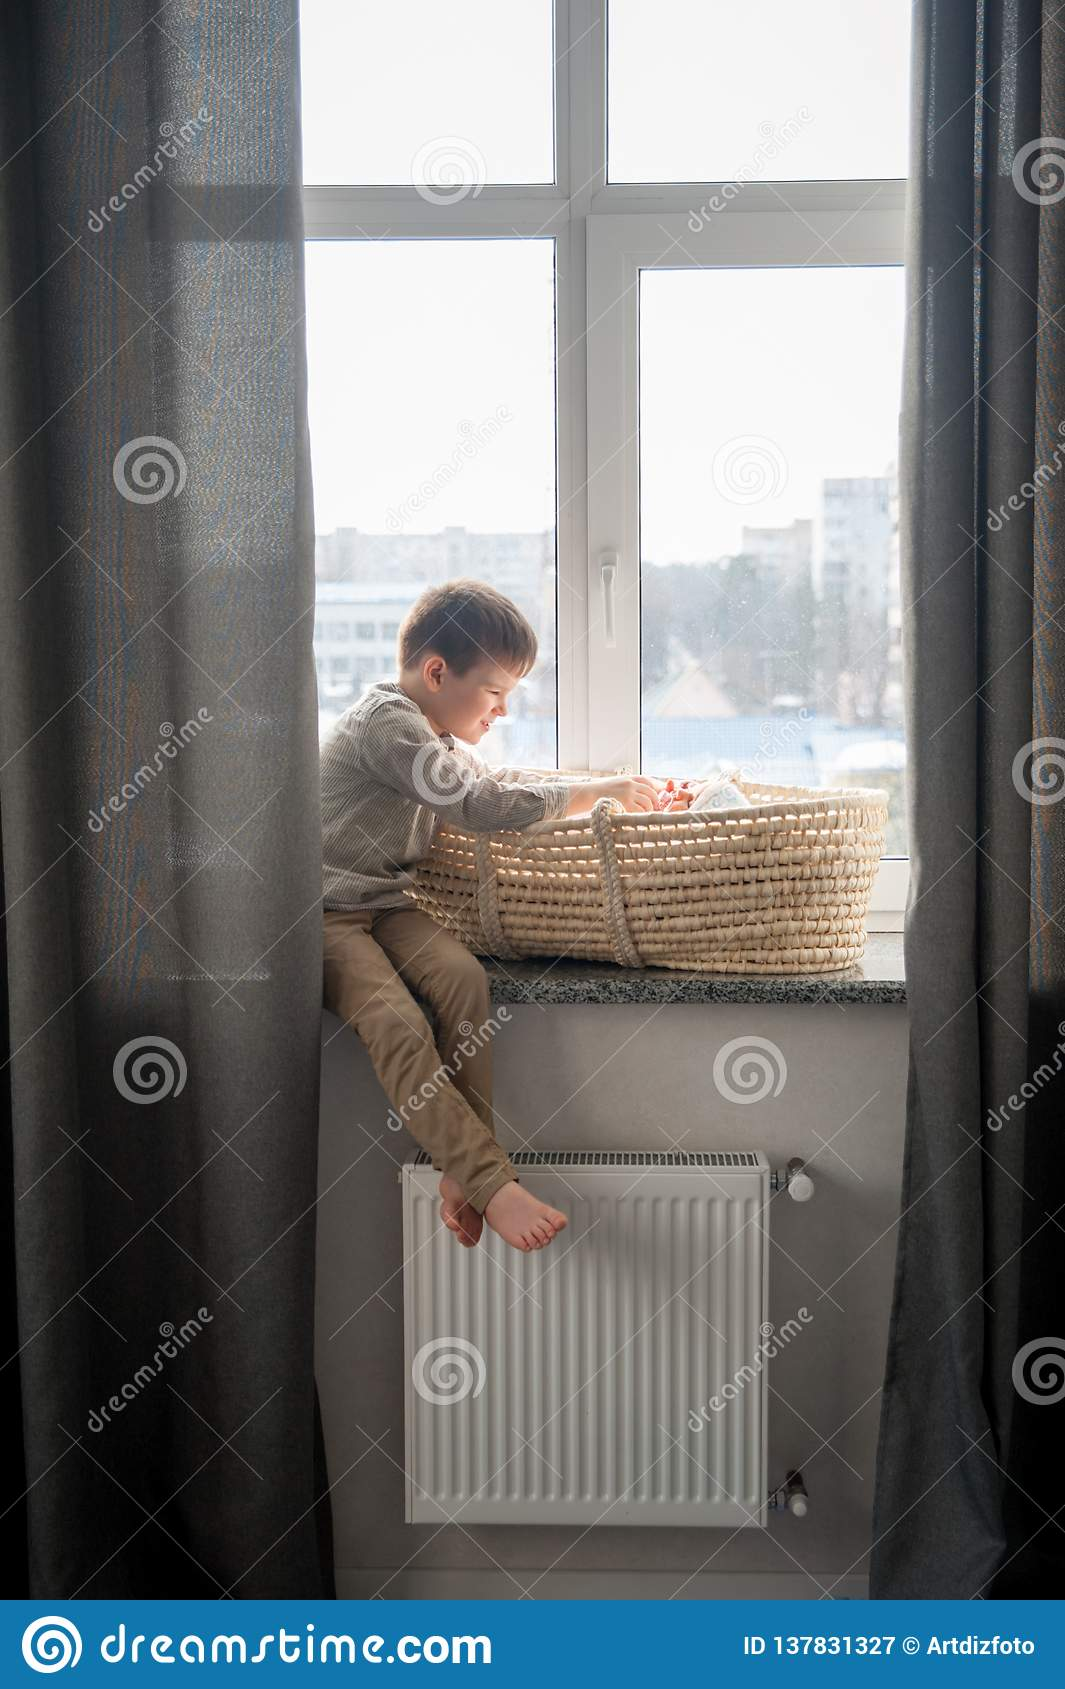 Little brother is sitting near the window with himnewborn sister in the cradle. Children with small age difference